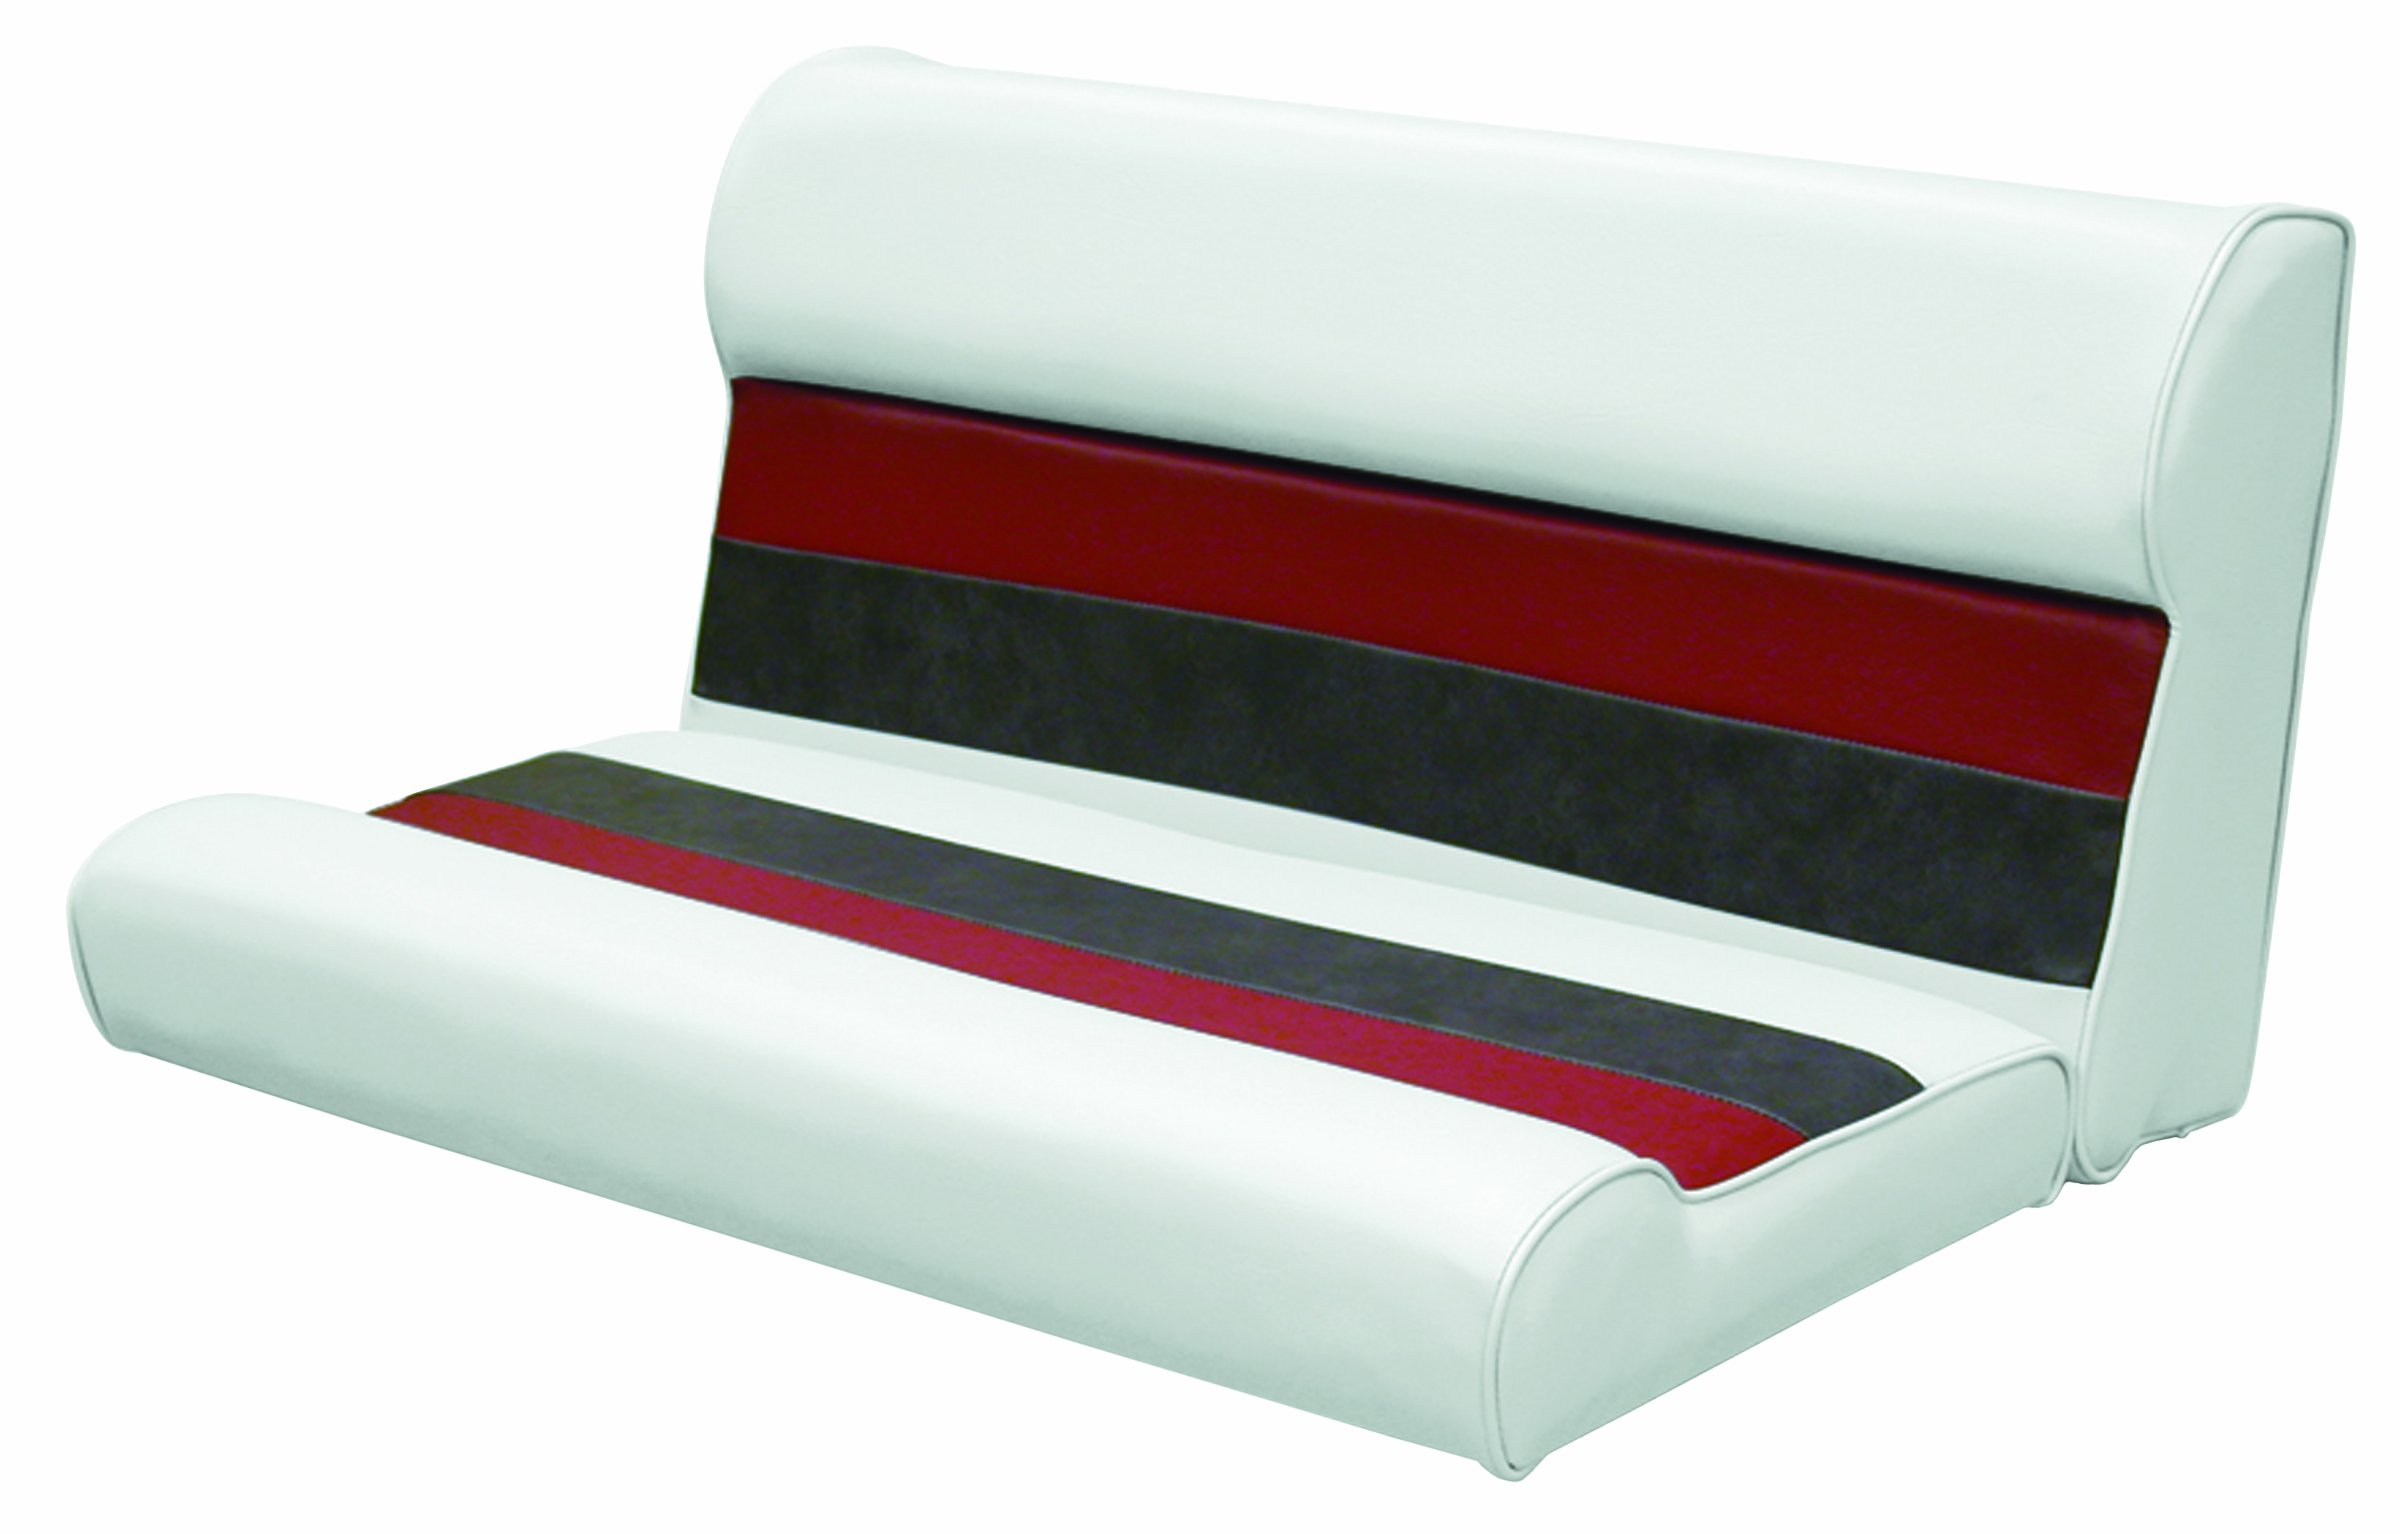 Wise 36-Inch Pontoon Bench Seat Cushion (Base Required to Complete), White-Charcoal-Red